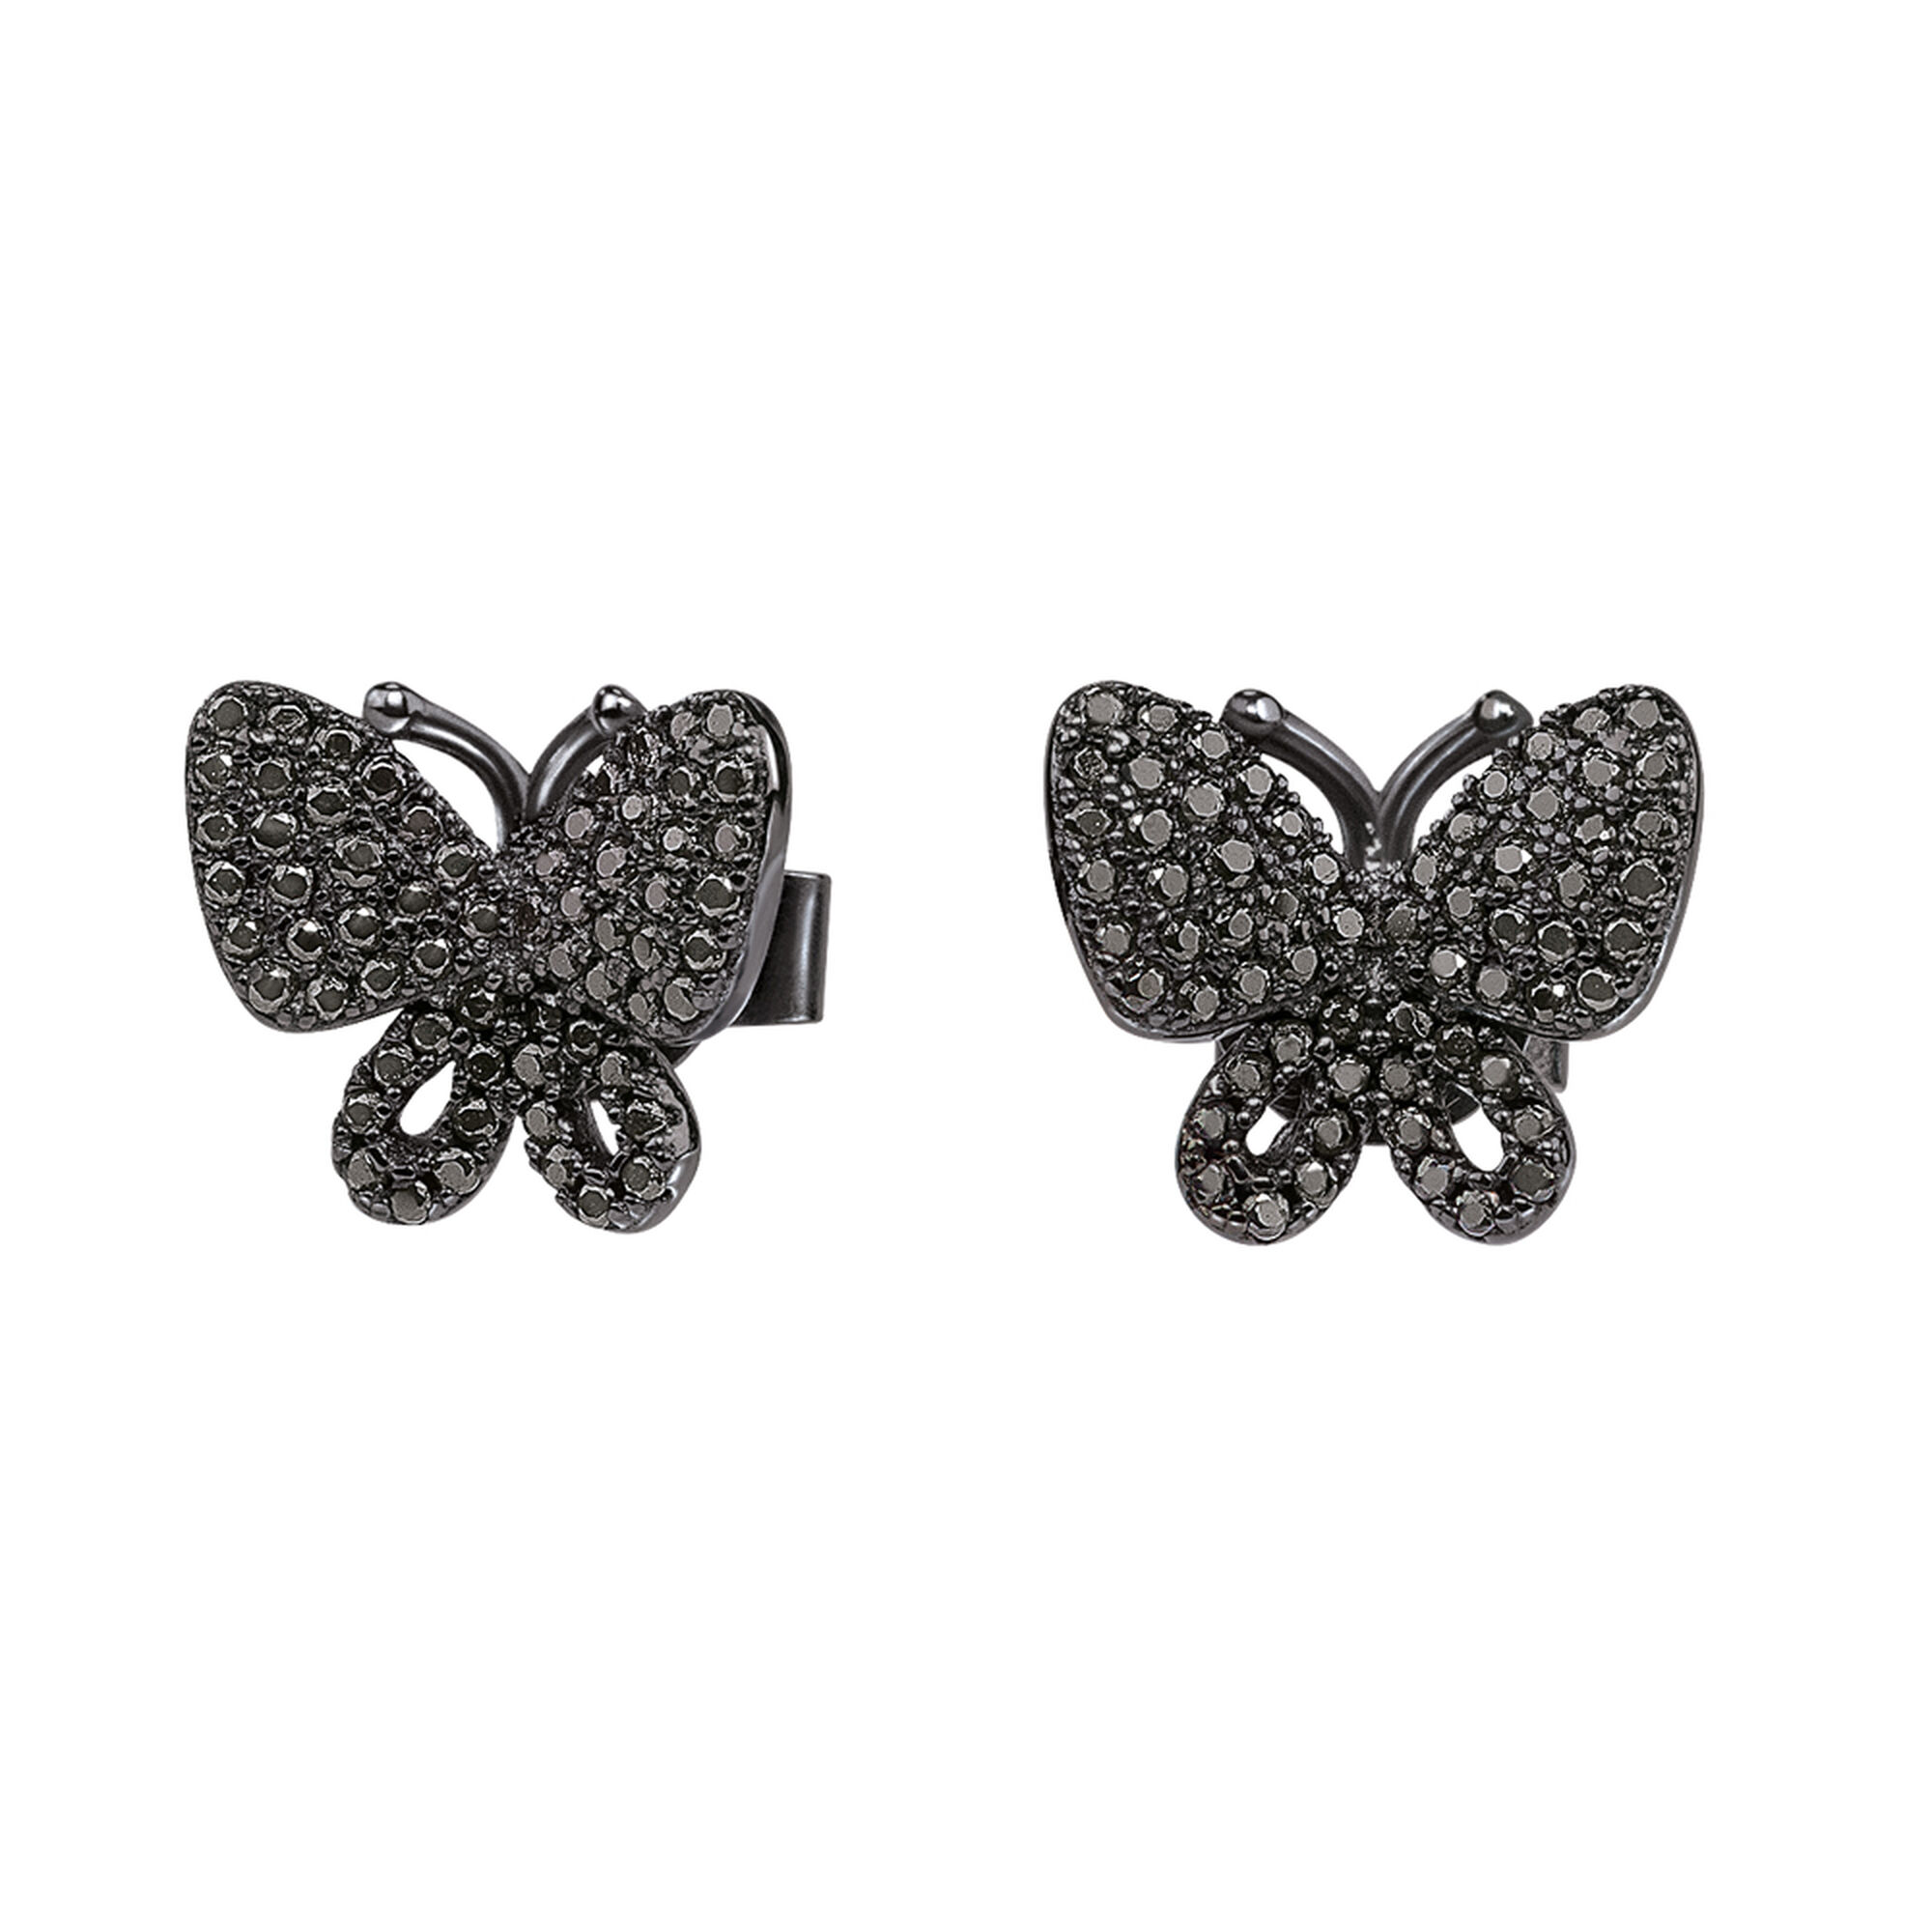 online butterfly buyjools earrings johnlewis com pdp by john rsp main lewis jenny jools brown at stud